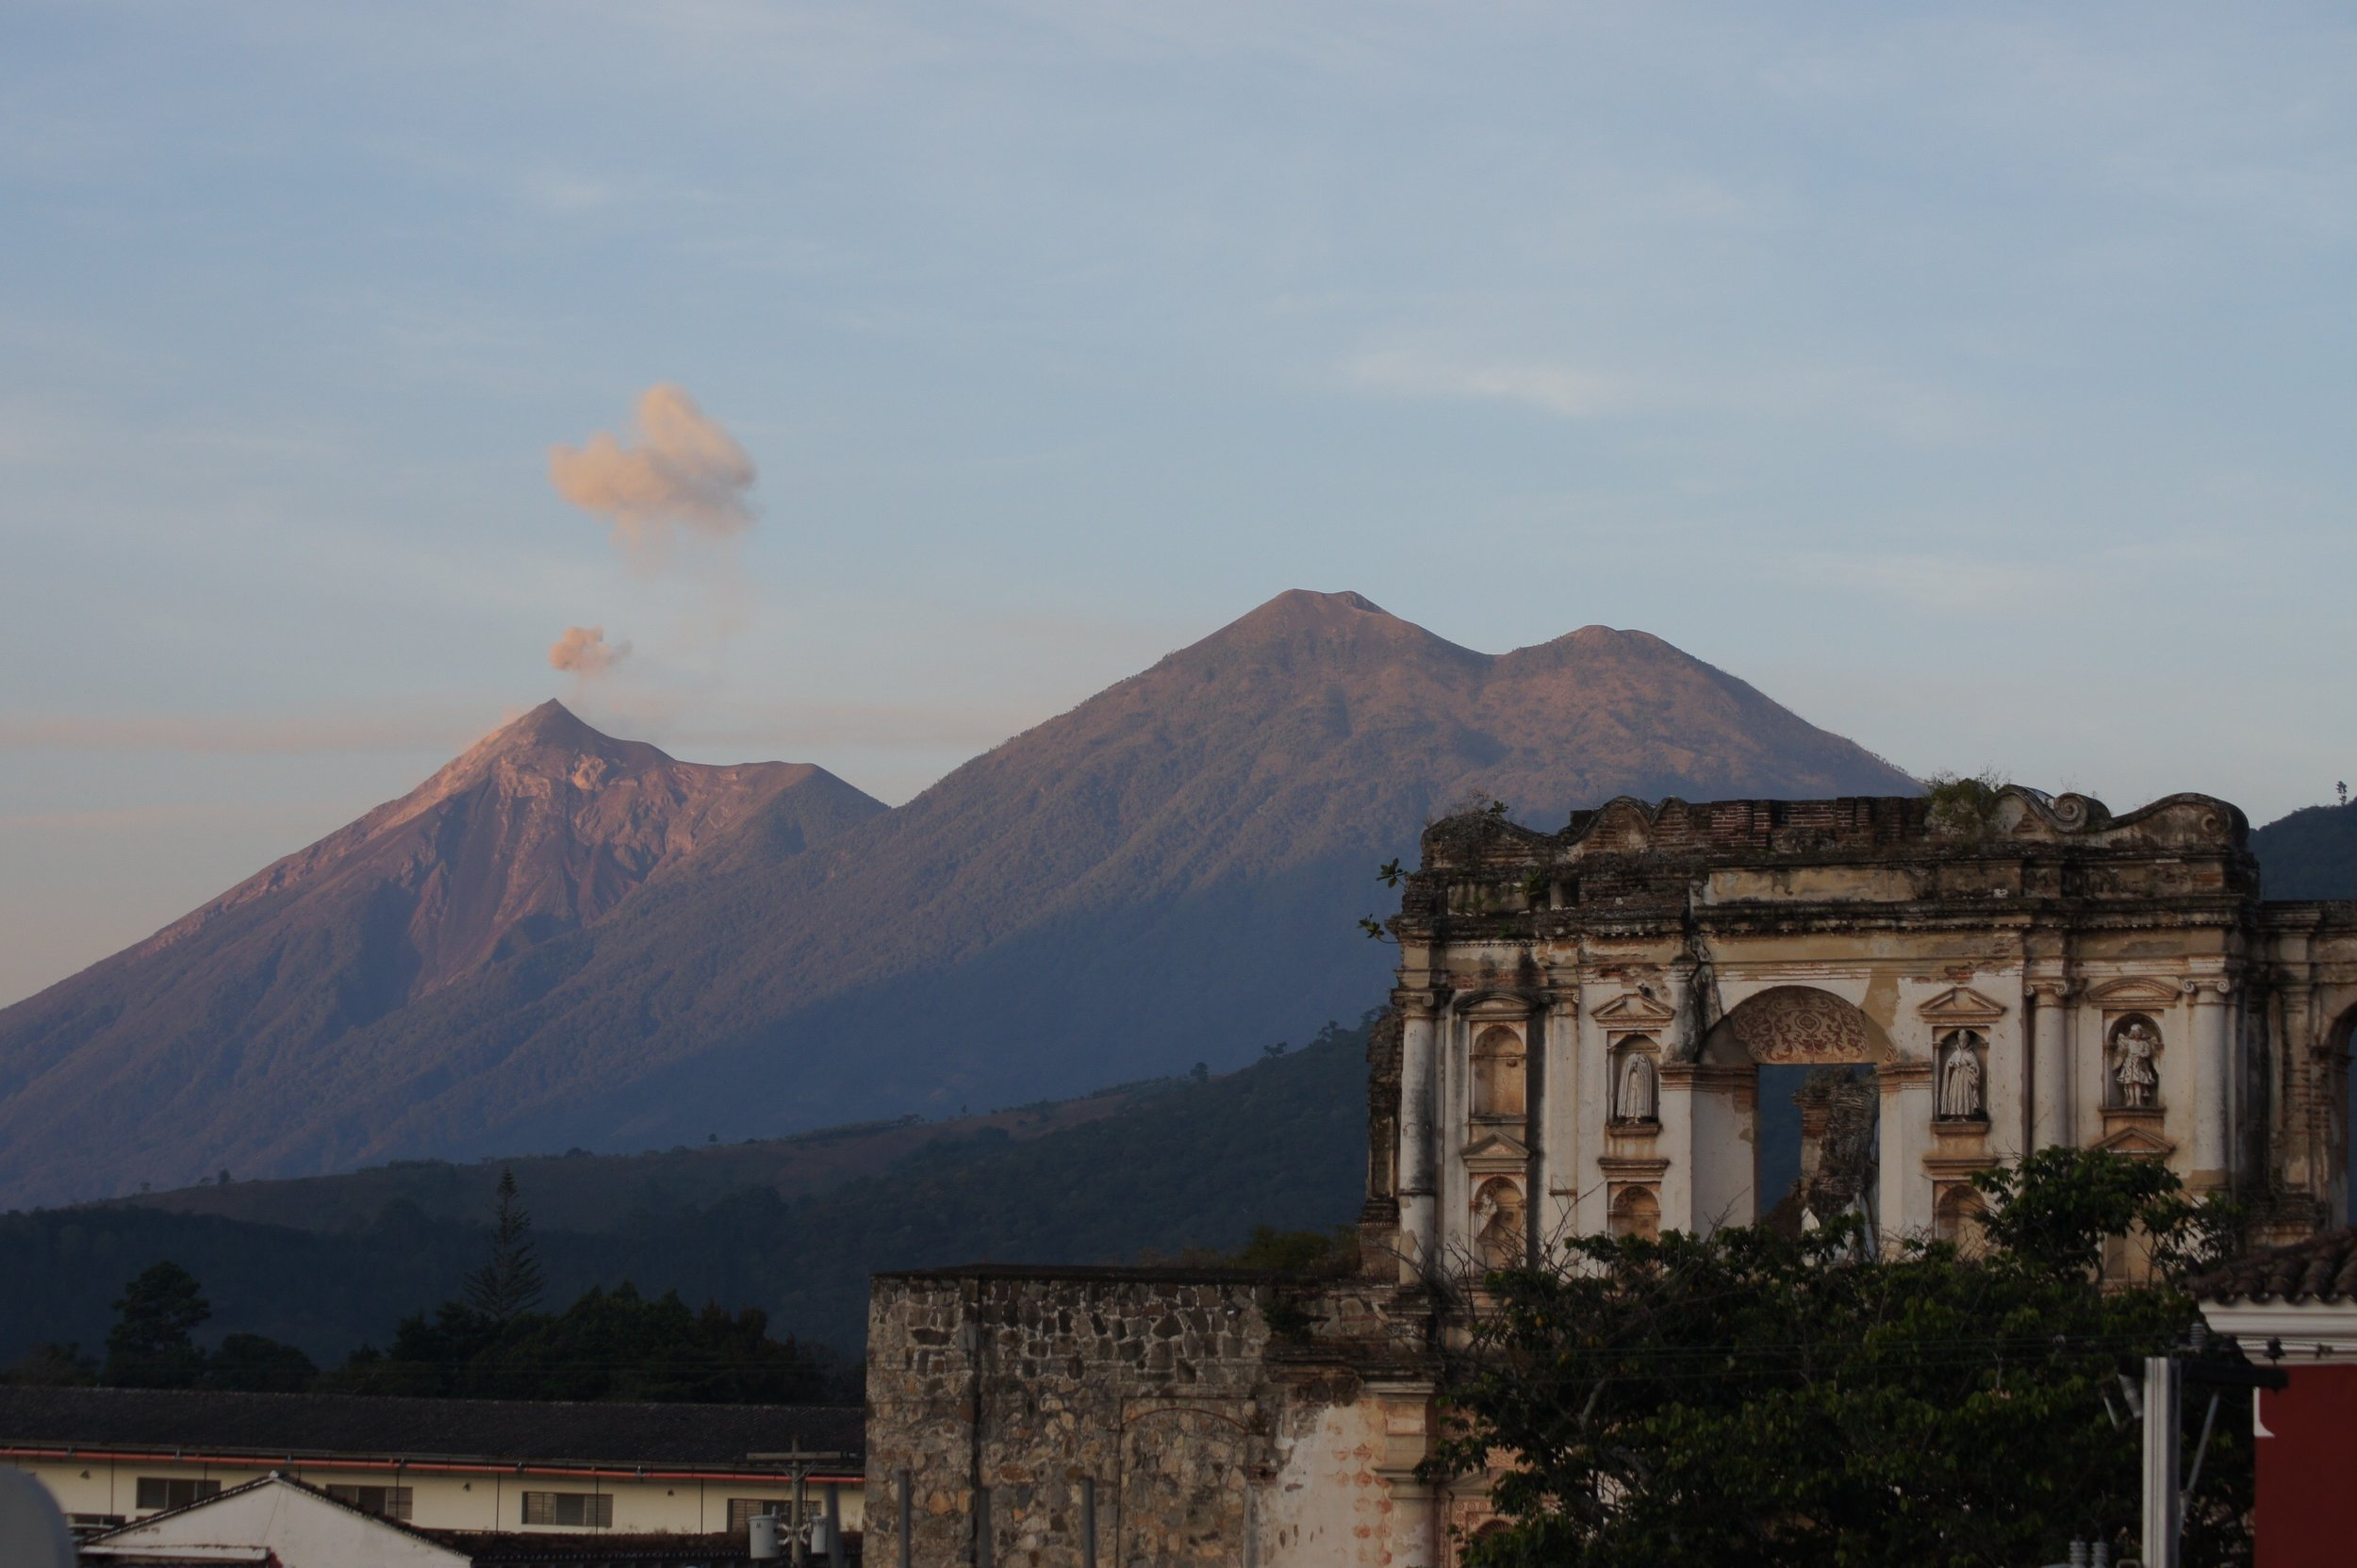 View of Agua, Acatenango and Fuego from the roof of Casa Antigua.